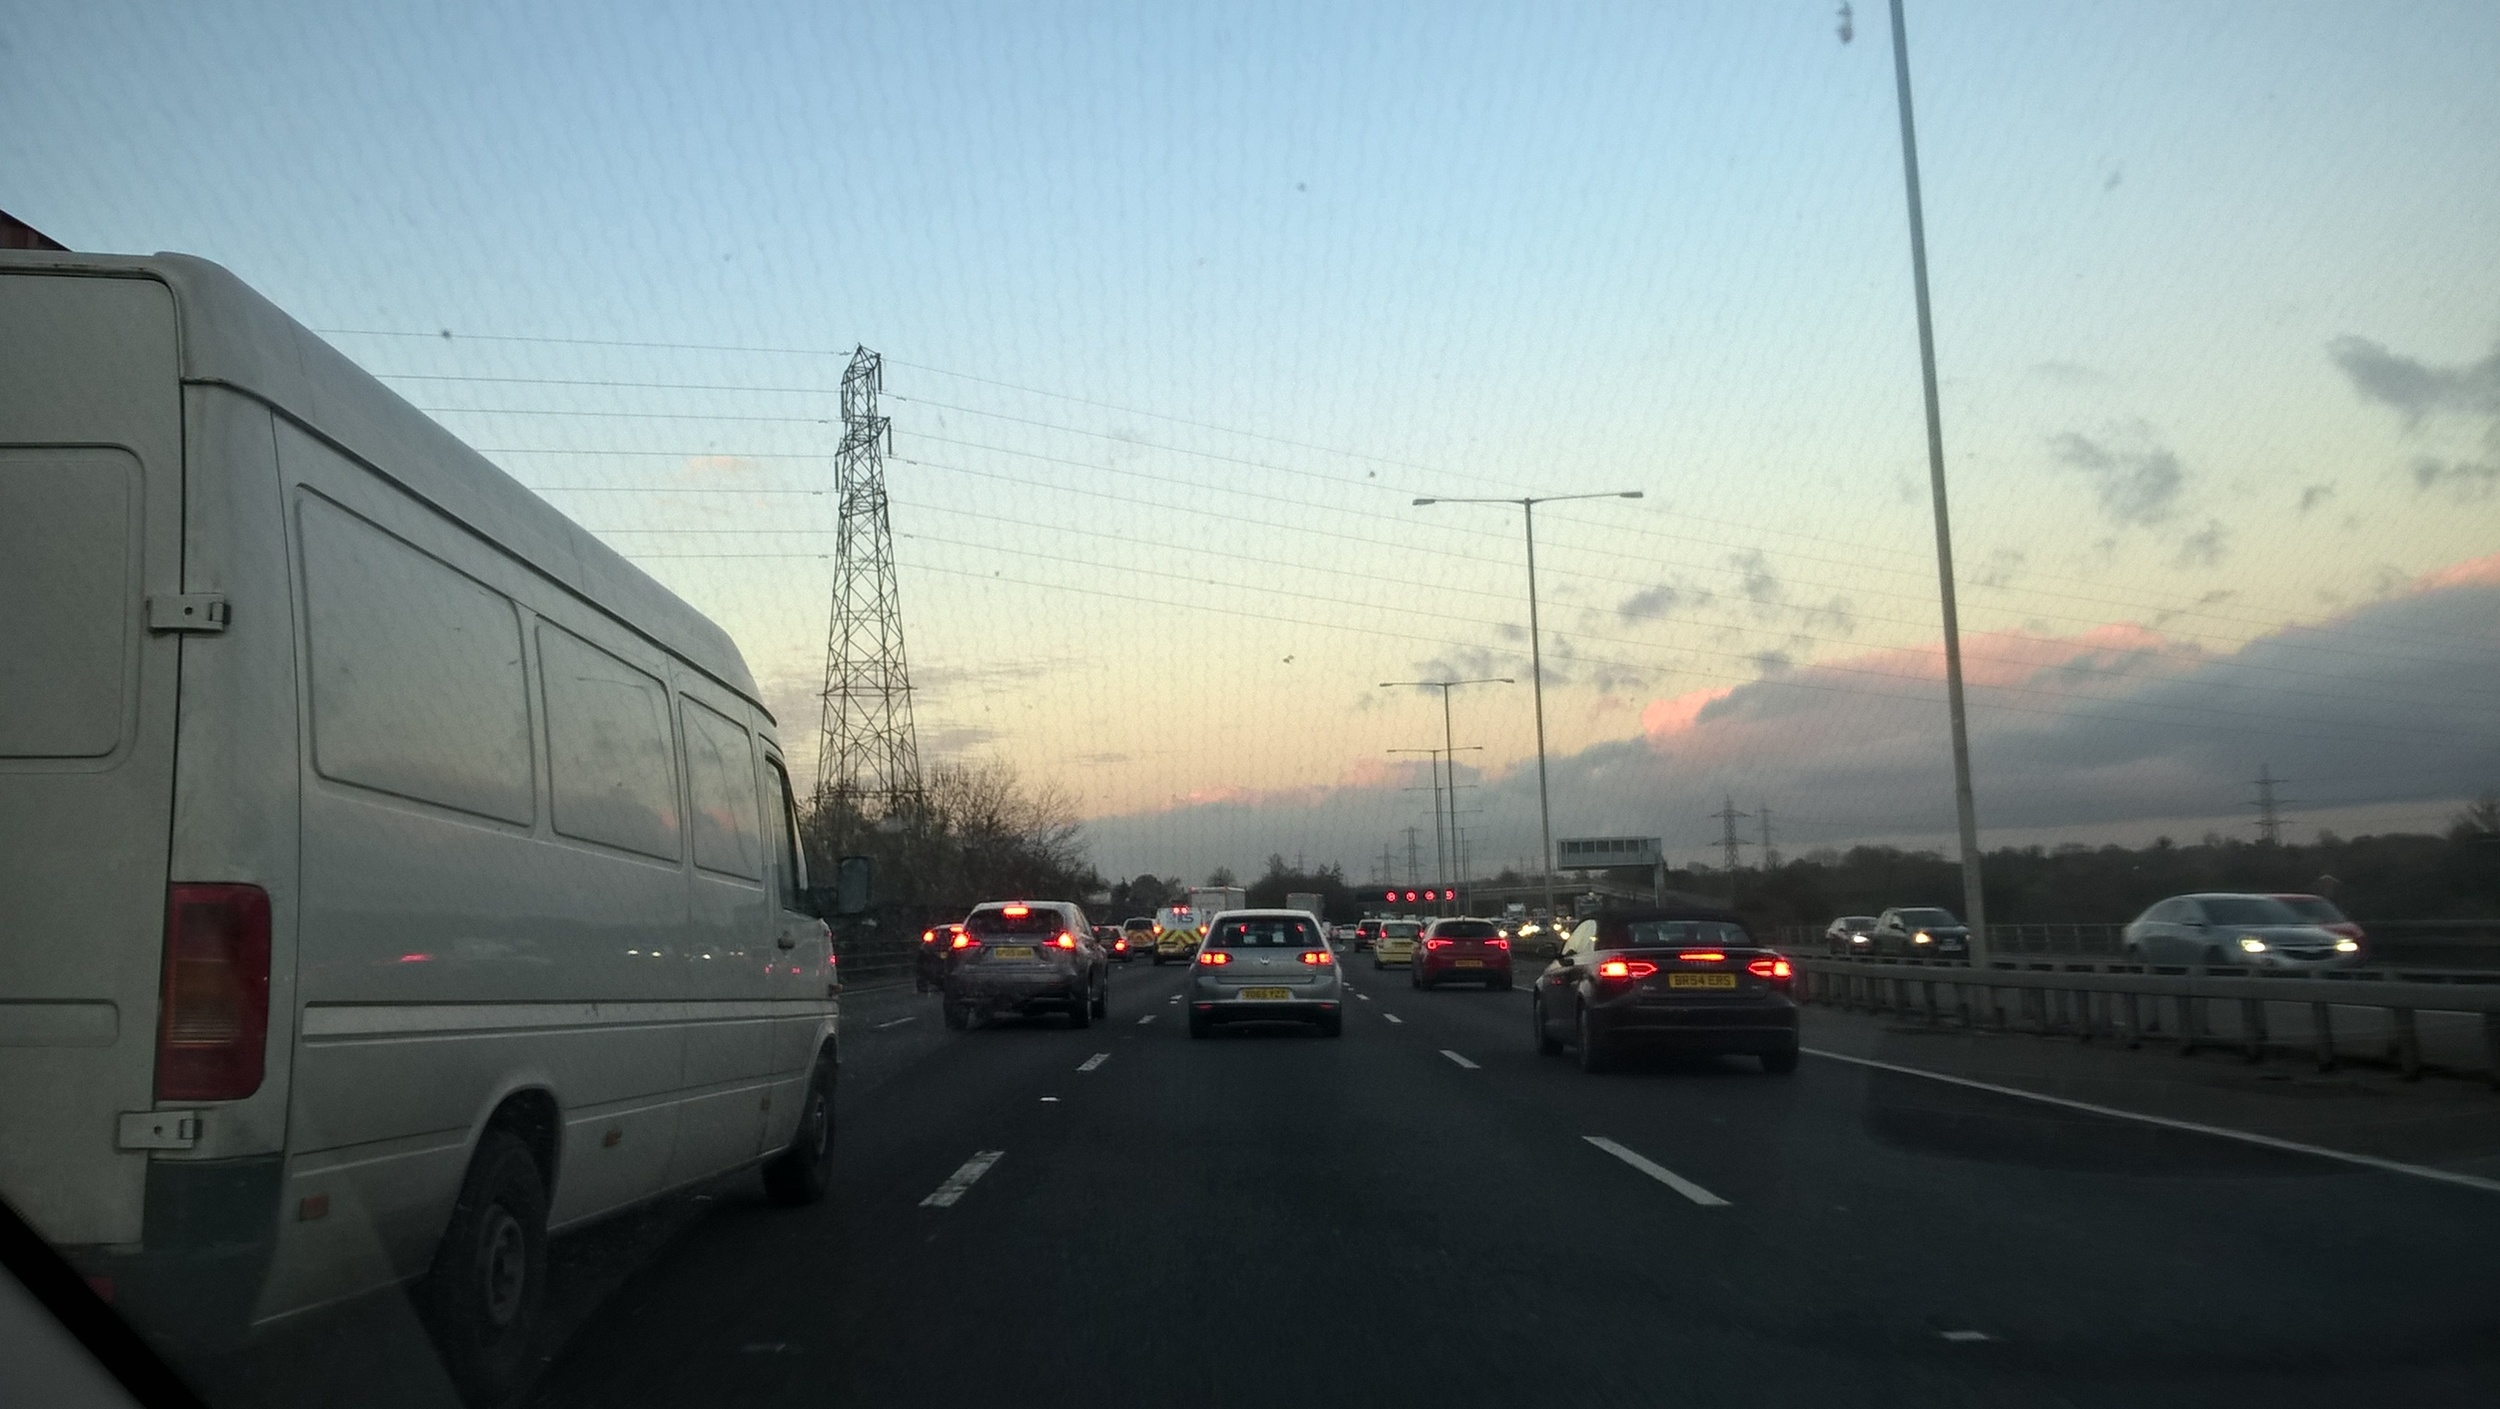 THE M25 - DANTE'S 10TH CIRCLE OF HELL